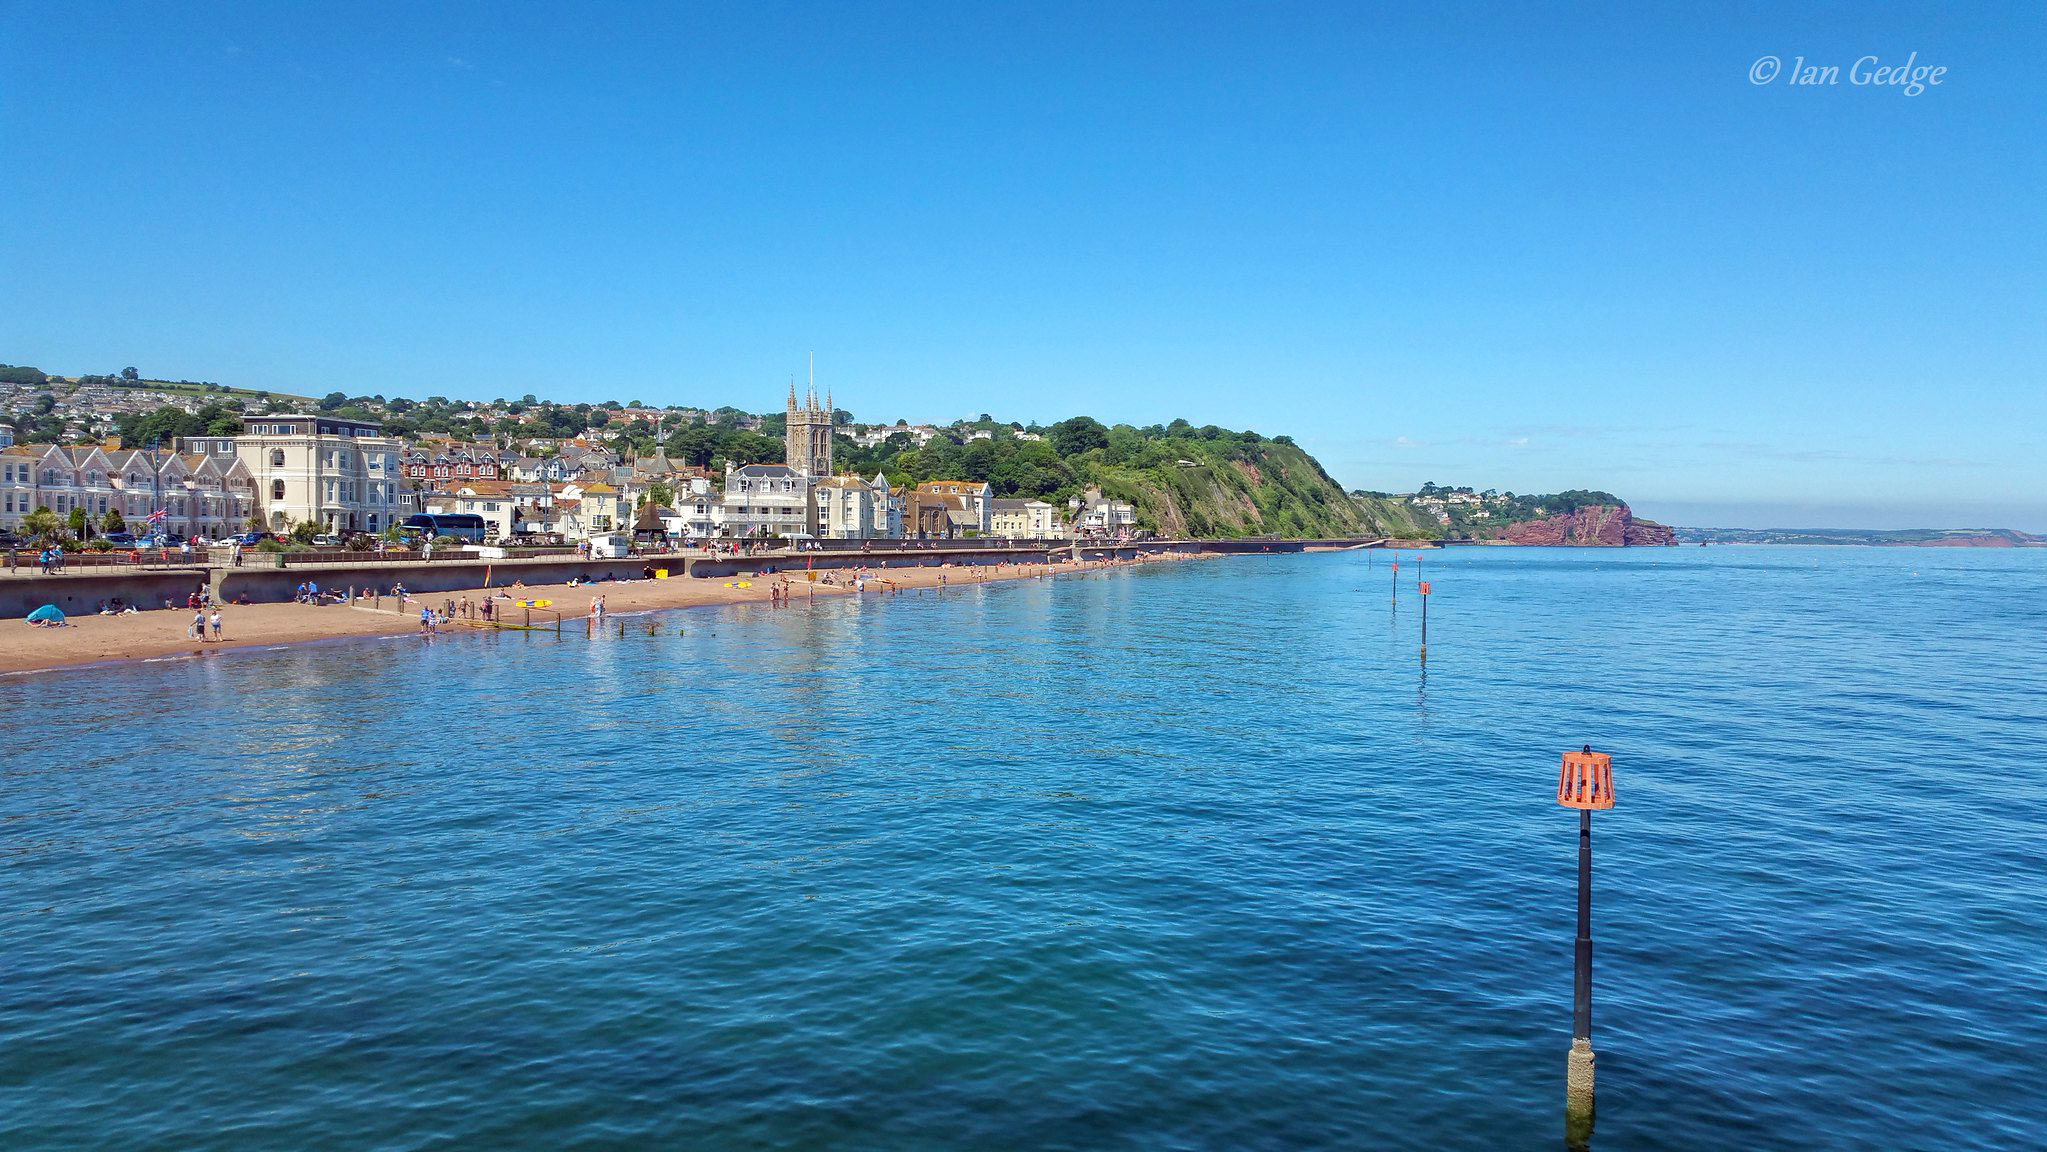 Teignmouth from the pier by Ian Gedge.jpg